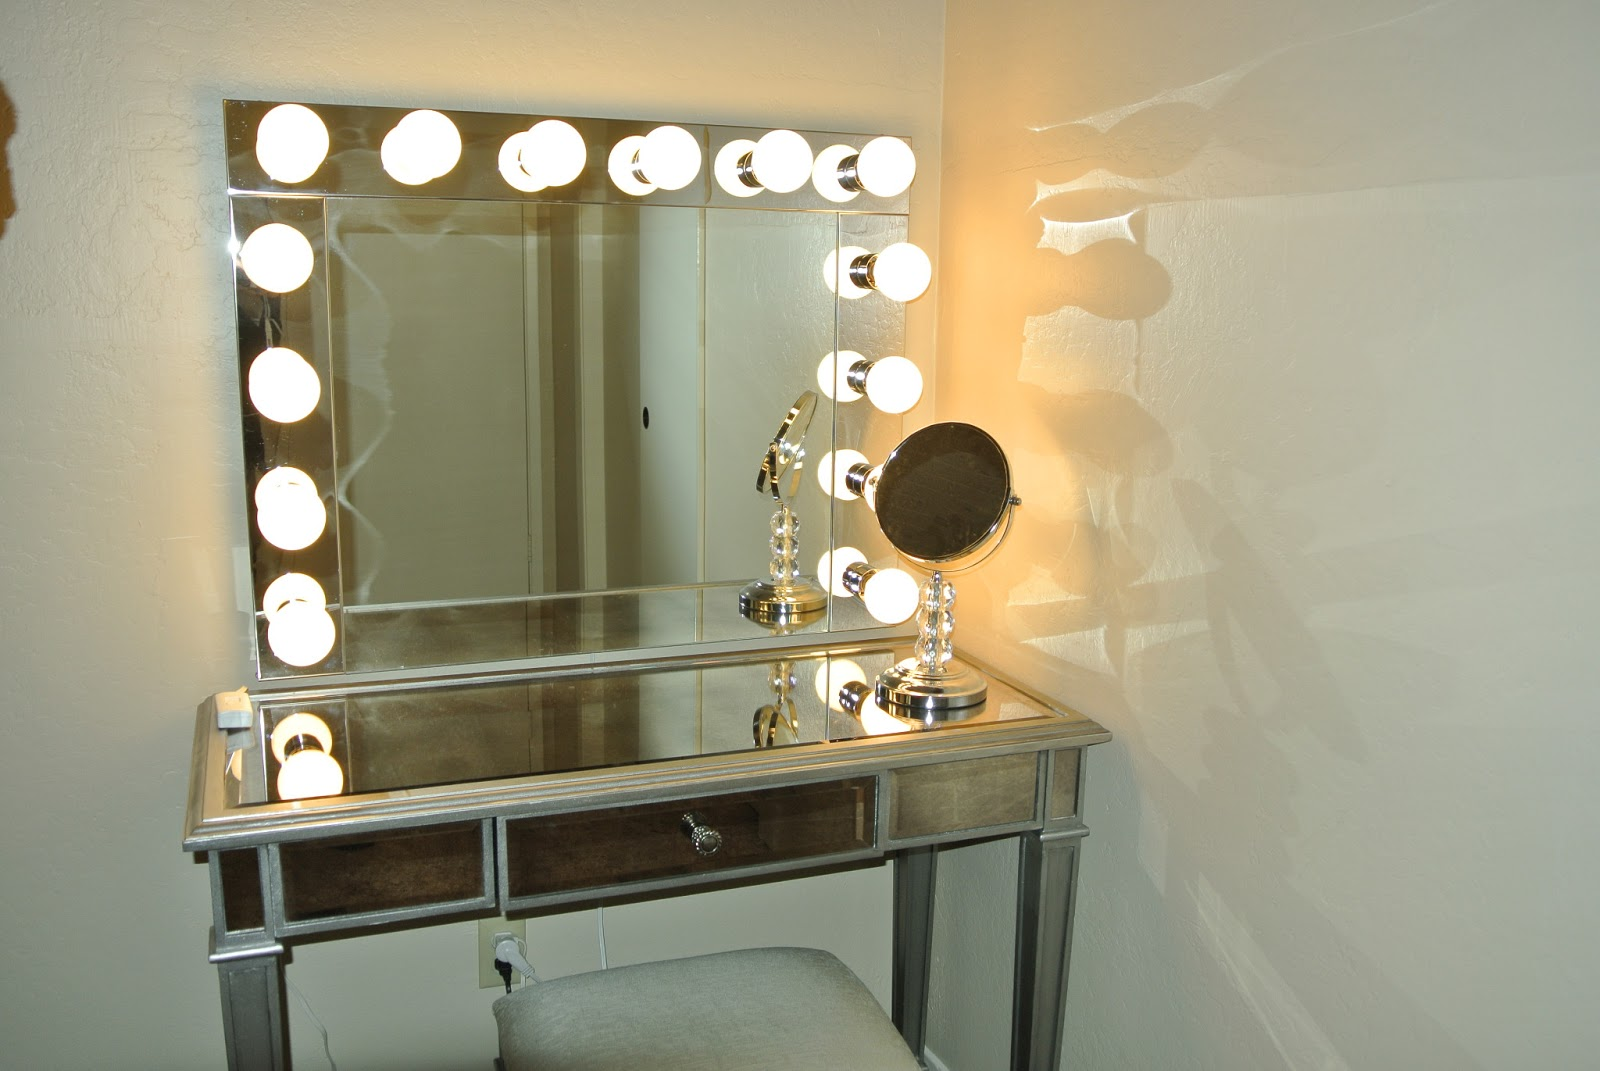 Wall Vanity Mirror With Lights 10 exquisite wall vanity mirror with lights | warisan lighting